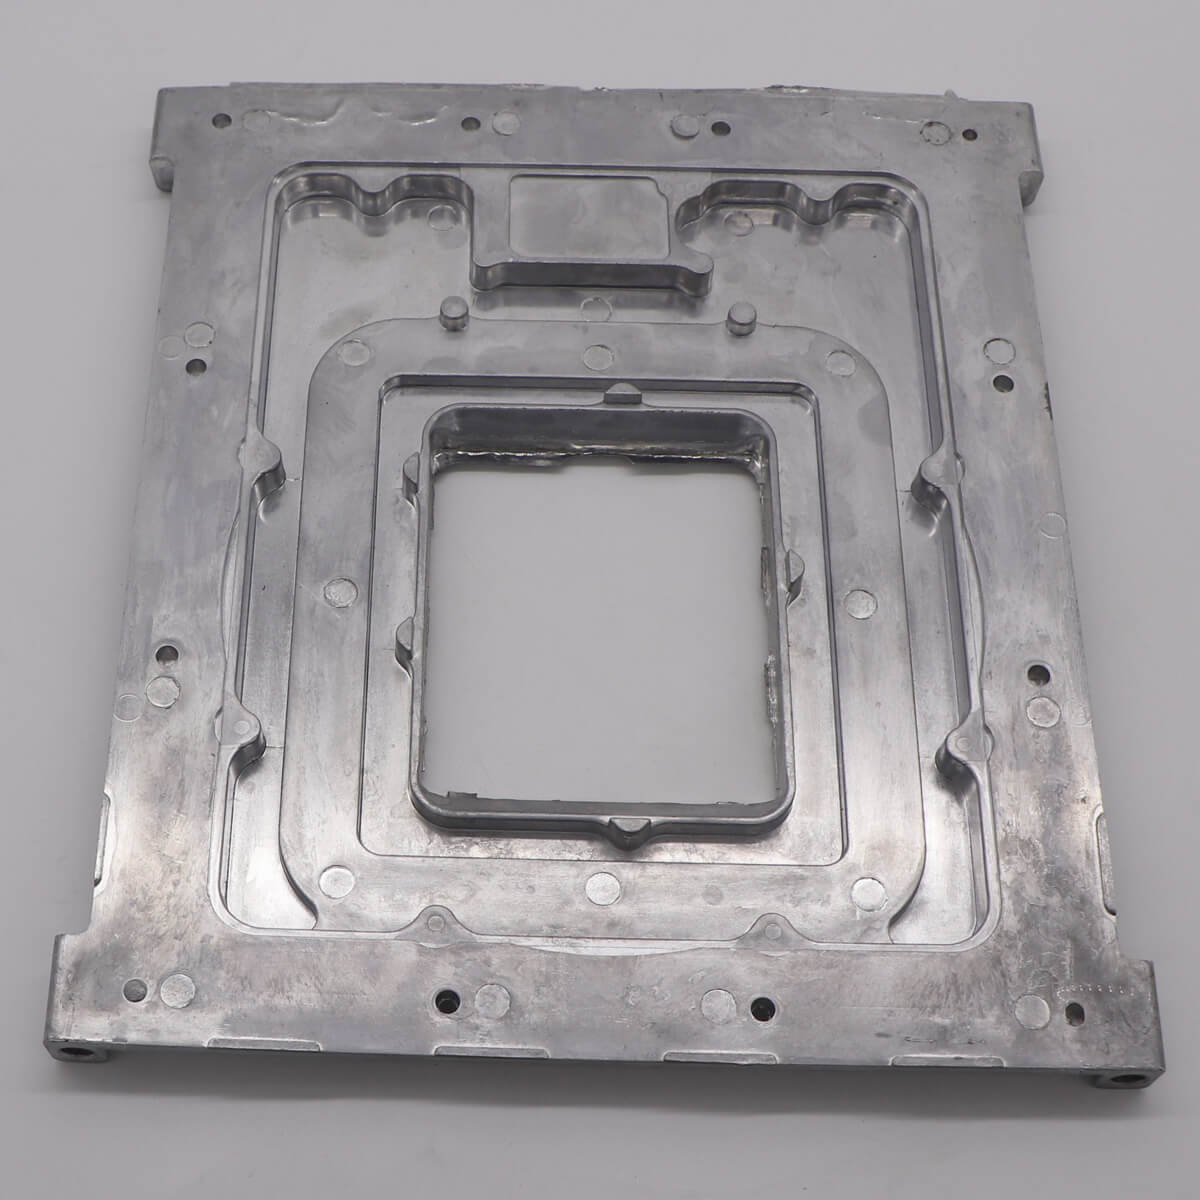 Xavier reasonable structure cnc milling parts front plate die casting-4